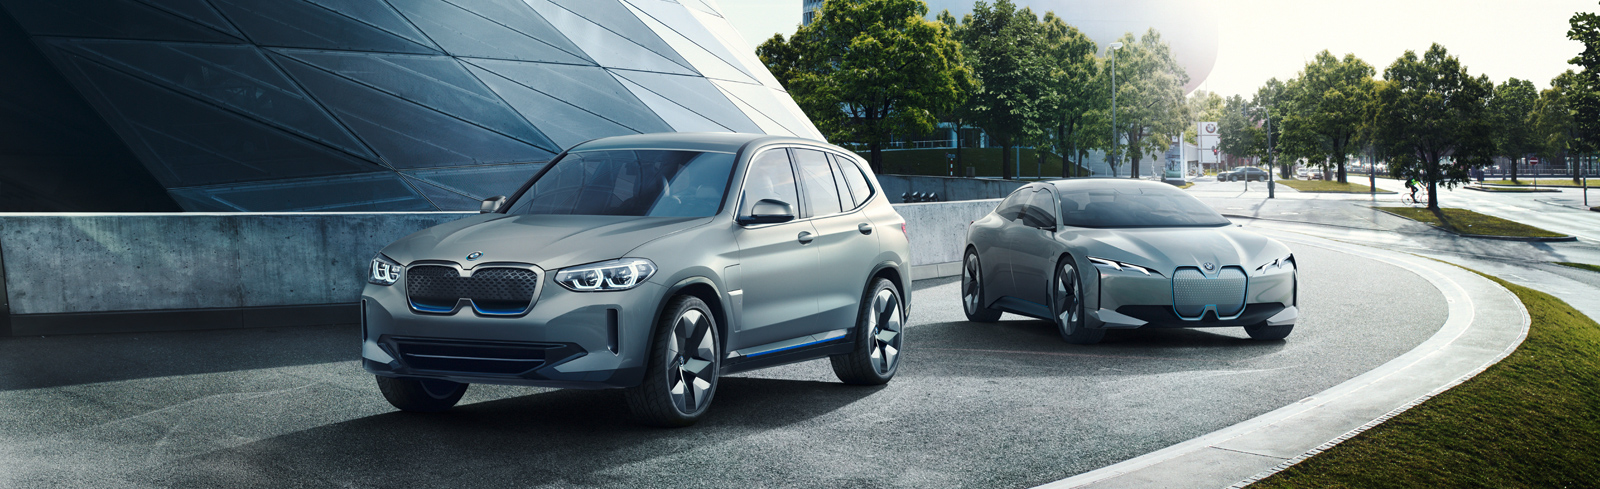 BMW has reached contractual agreement with its cell manufacturers for its 5th Gen battery cells